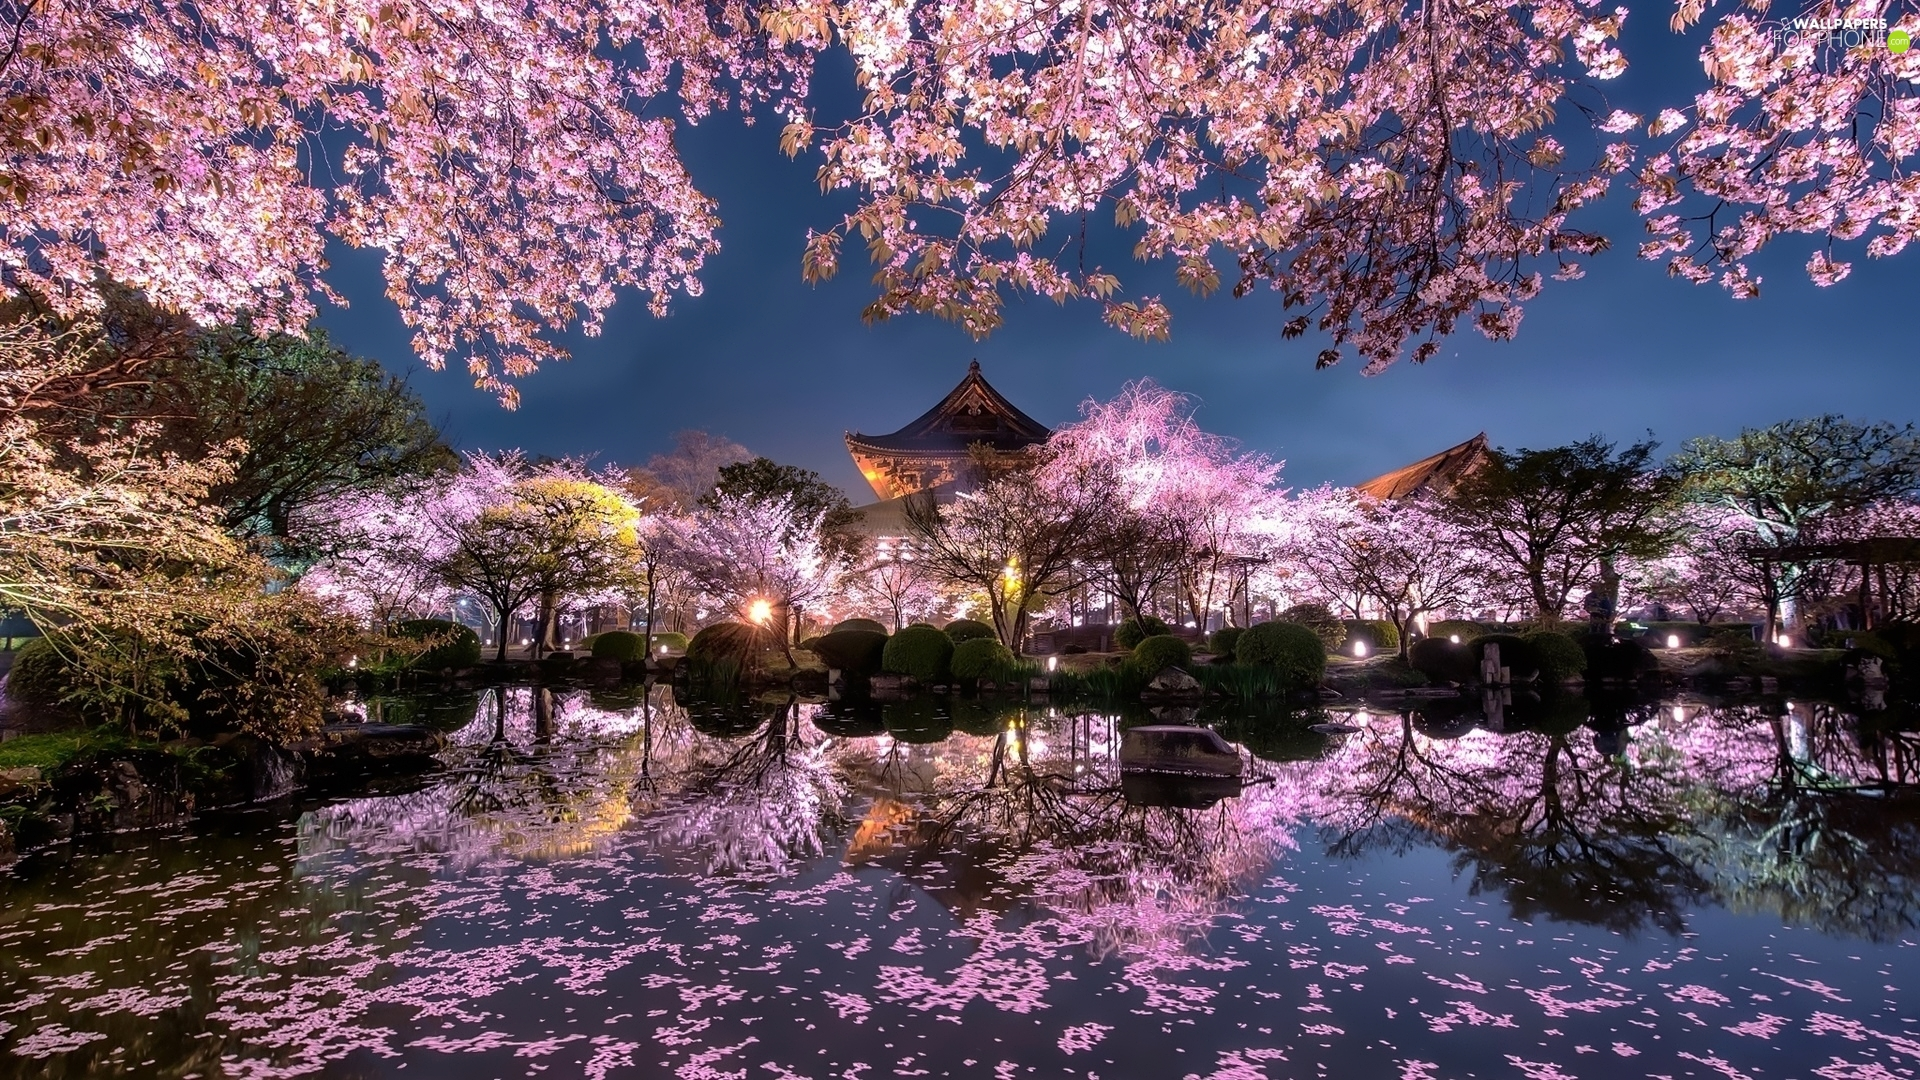 Pond - car, Japanese Garden, flourishing, trees, structures, evening, cherries, Spring, viewes